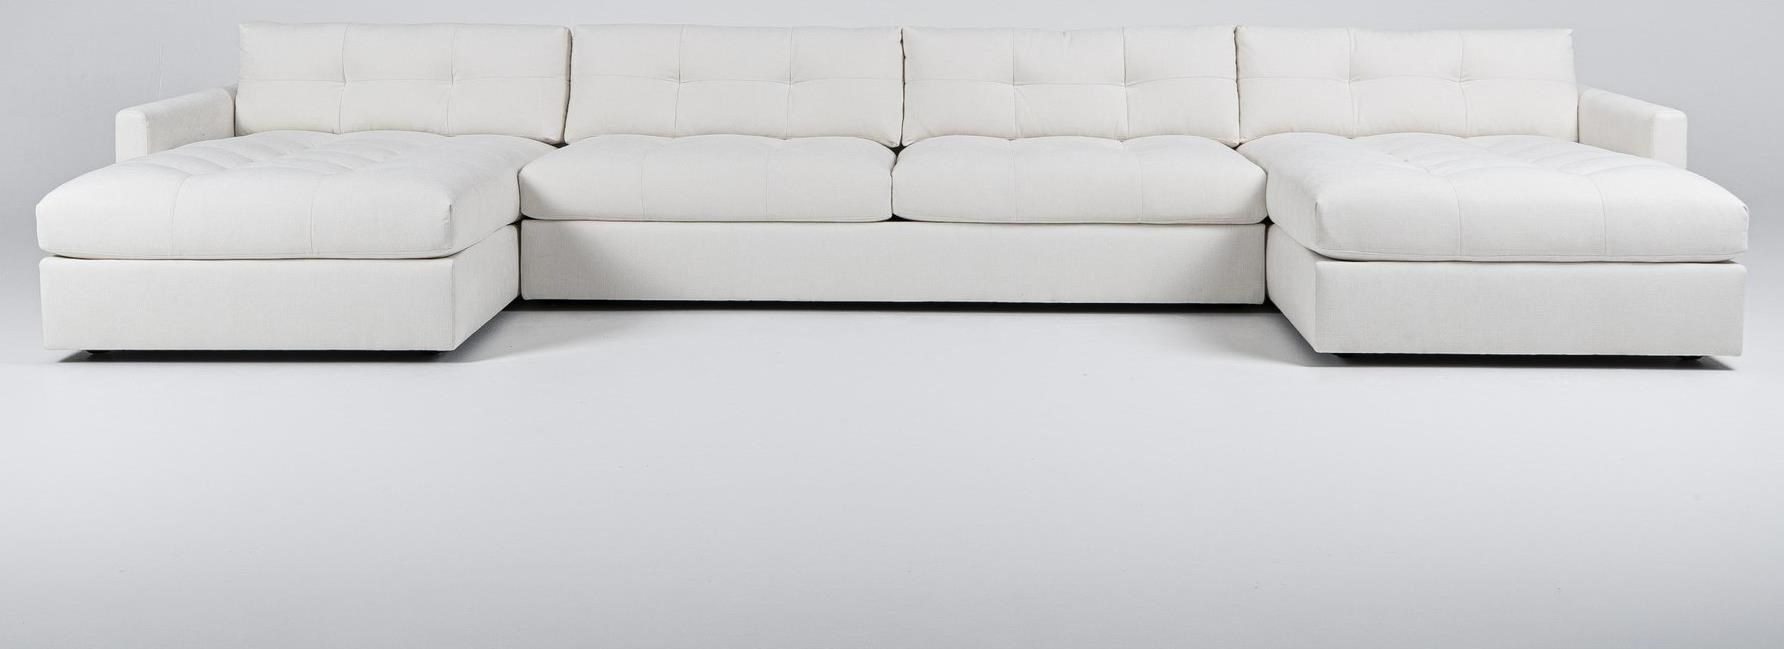 Carmet Sectional with 2 Chaises by American Leather at Baer's Furniture